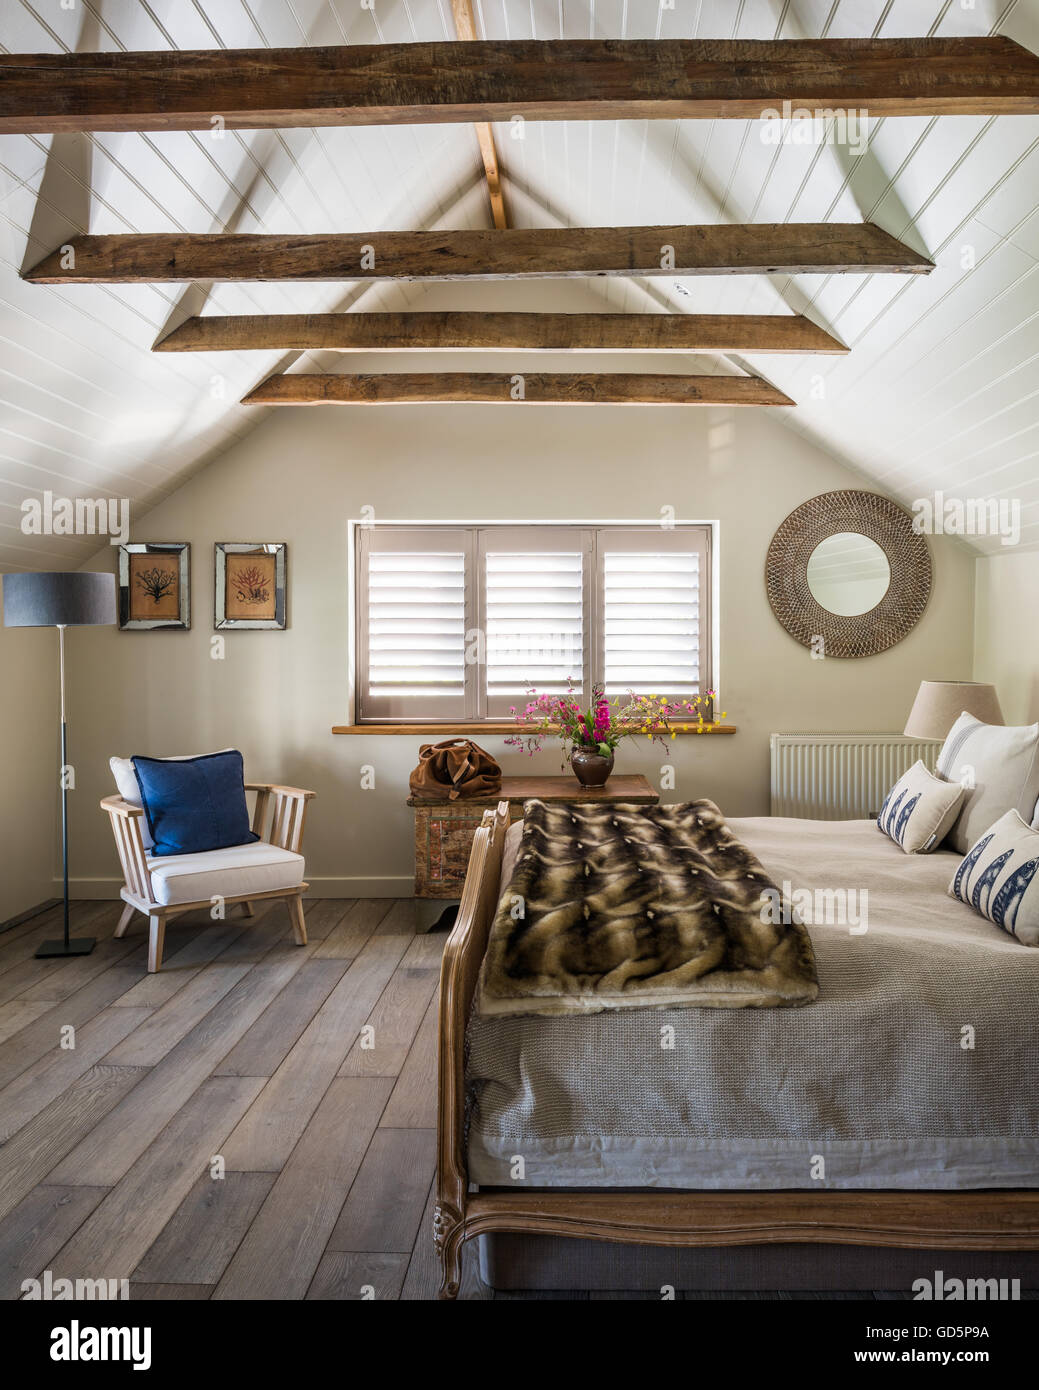 Plantation Shutters And White Wooden Ceiling Cladding In